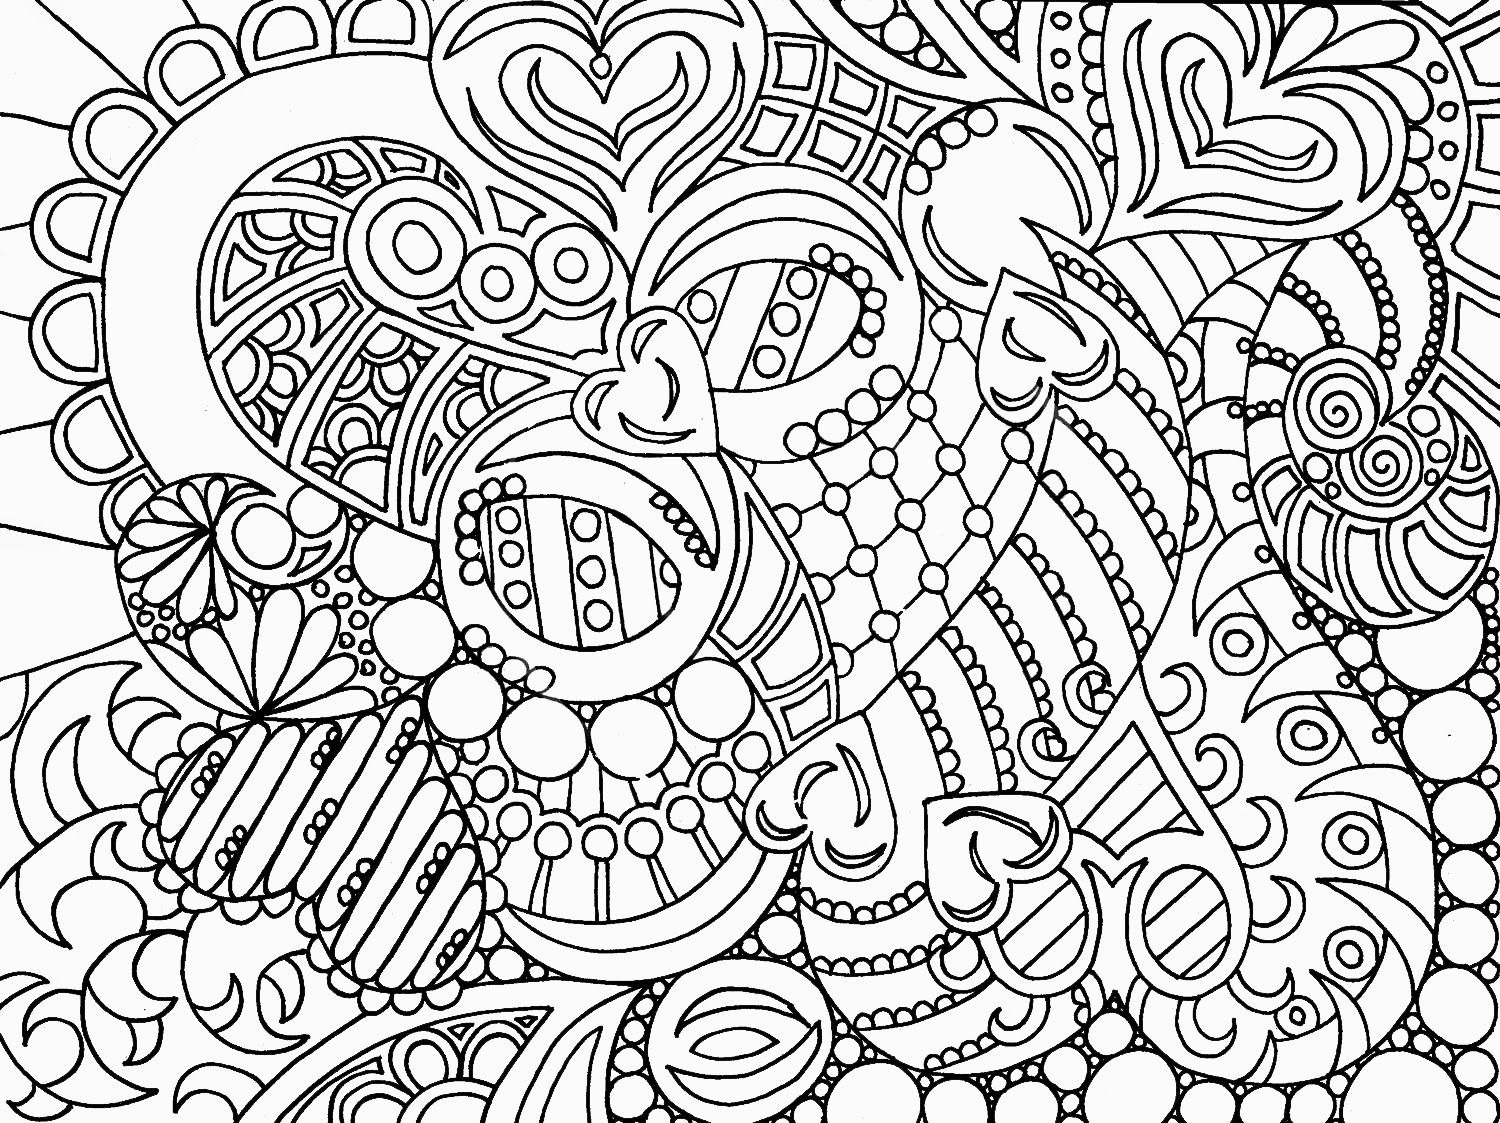 abstract coloring pages You can